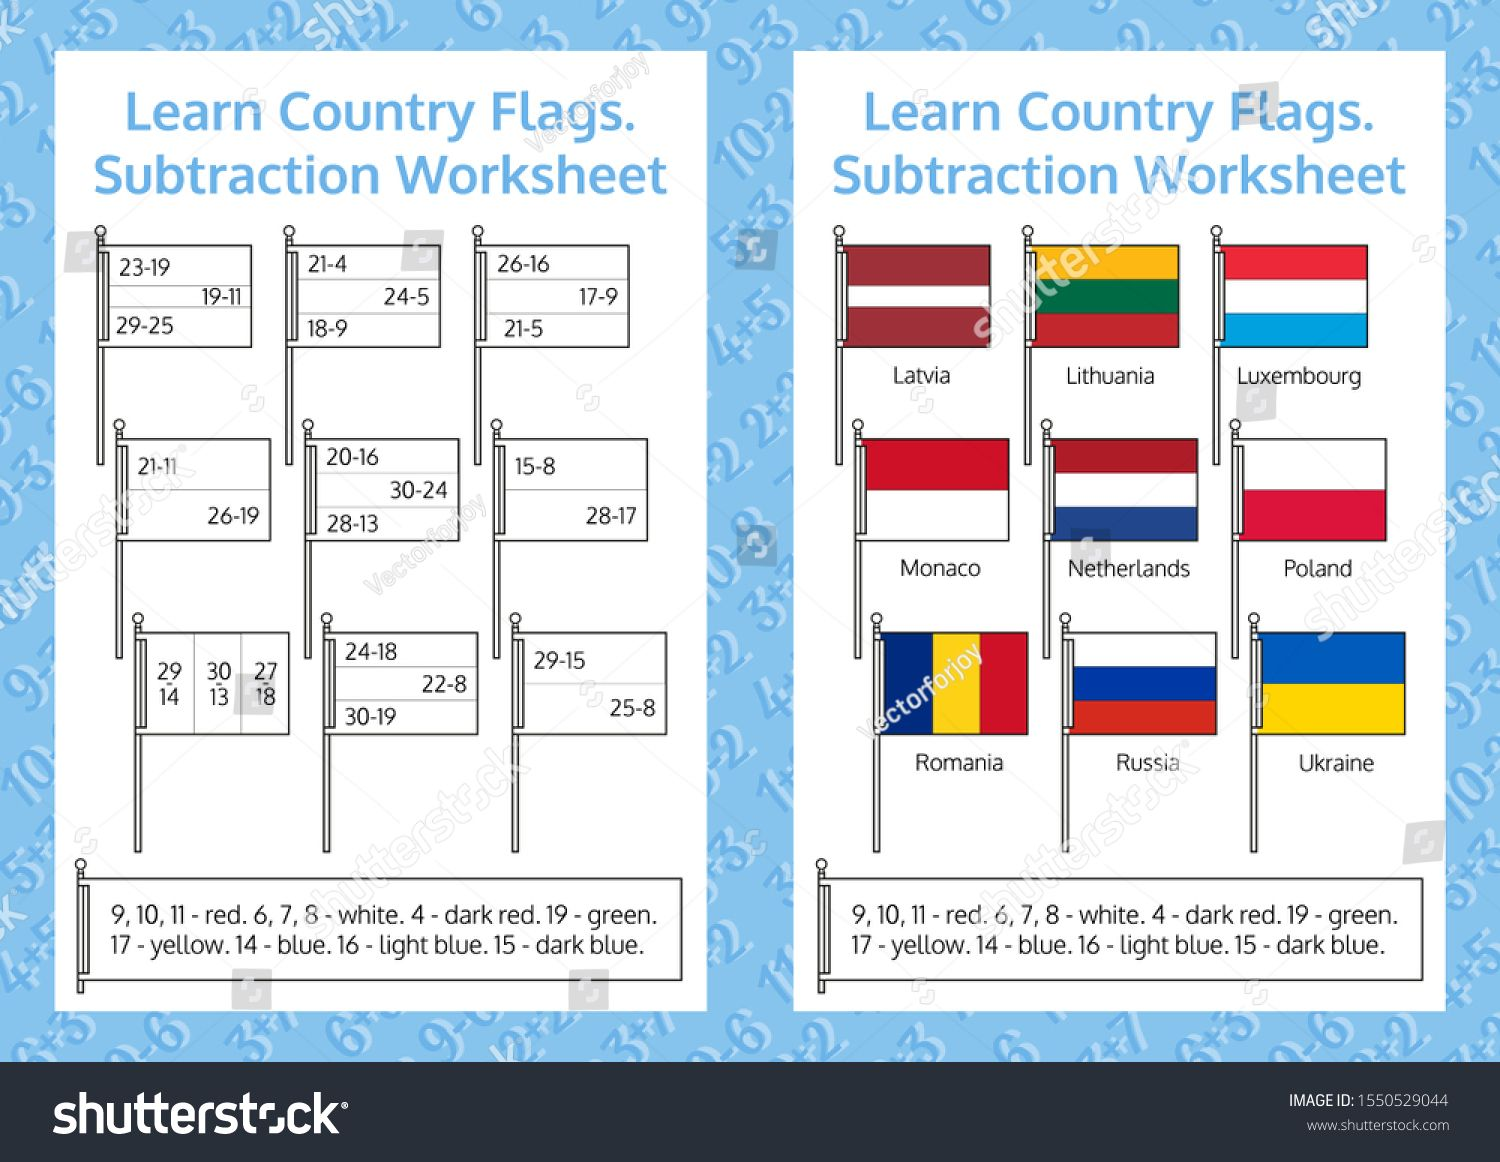 Learn Country Flags Subtraction Worksheet Educational